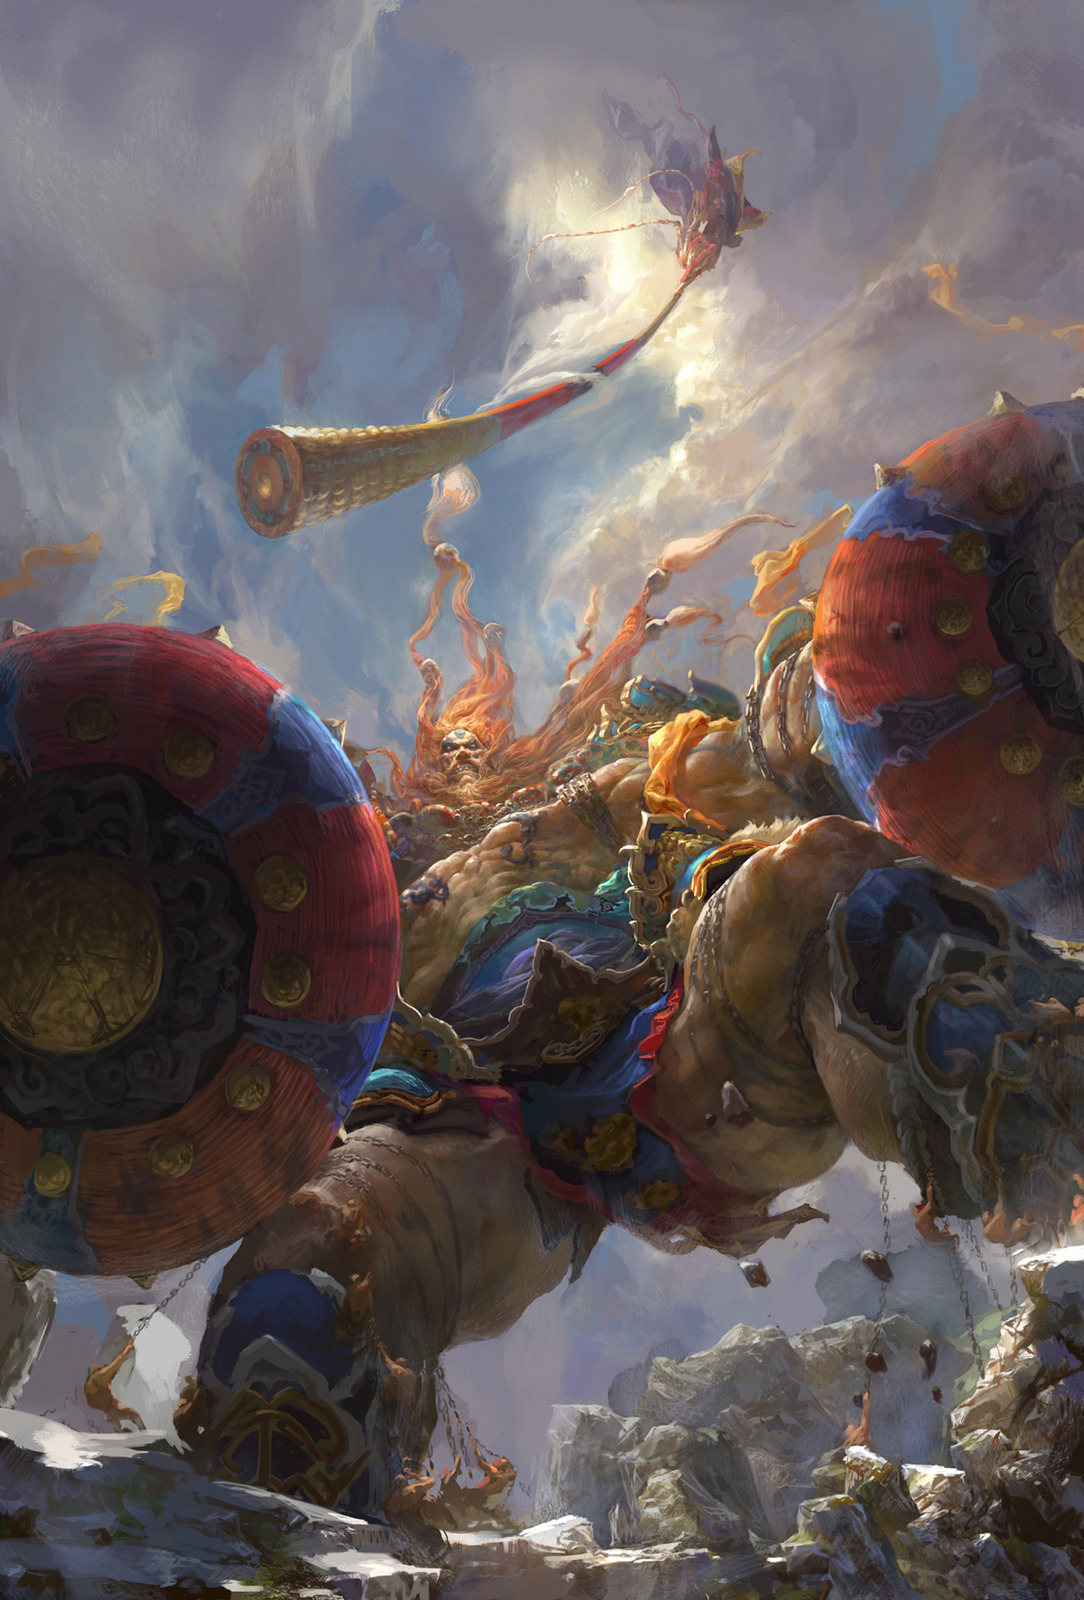 Les digital paintings de batailles épiques de Fenghua Zhong